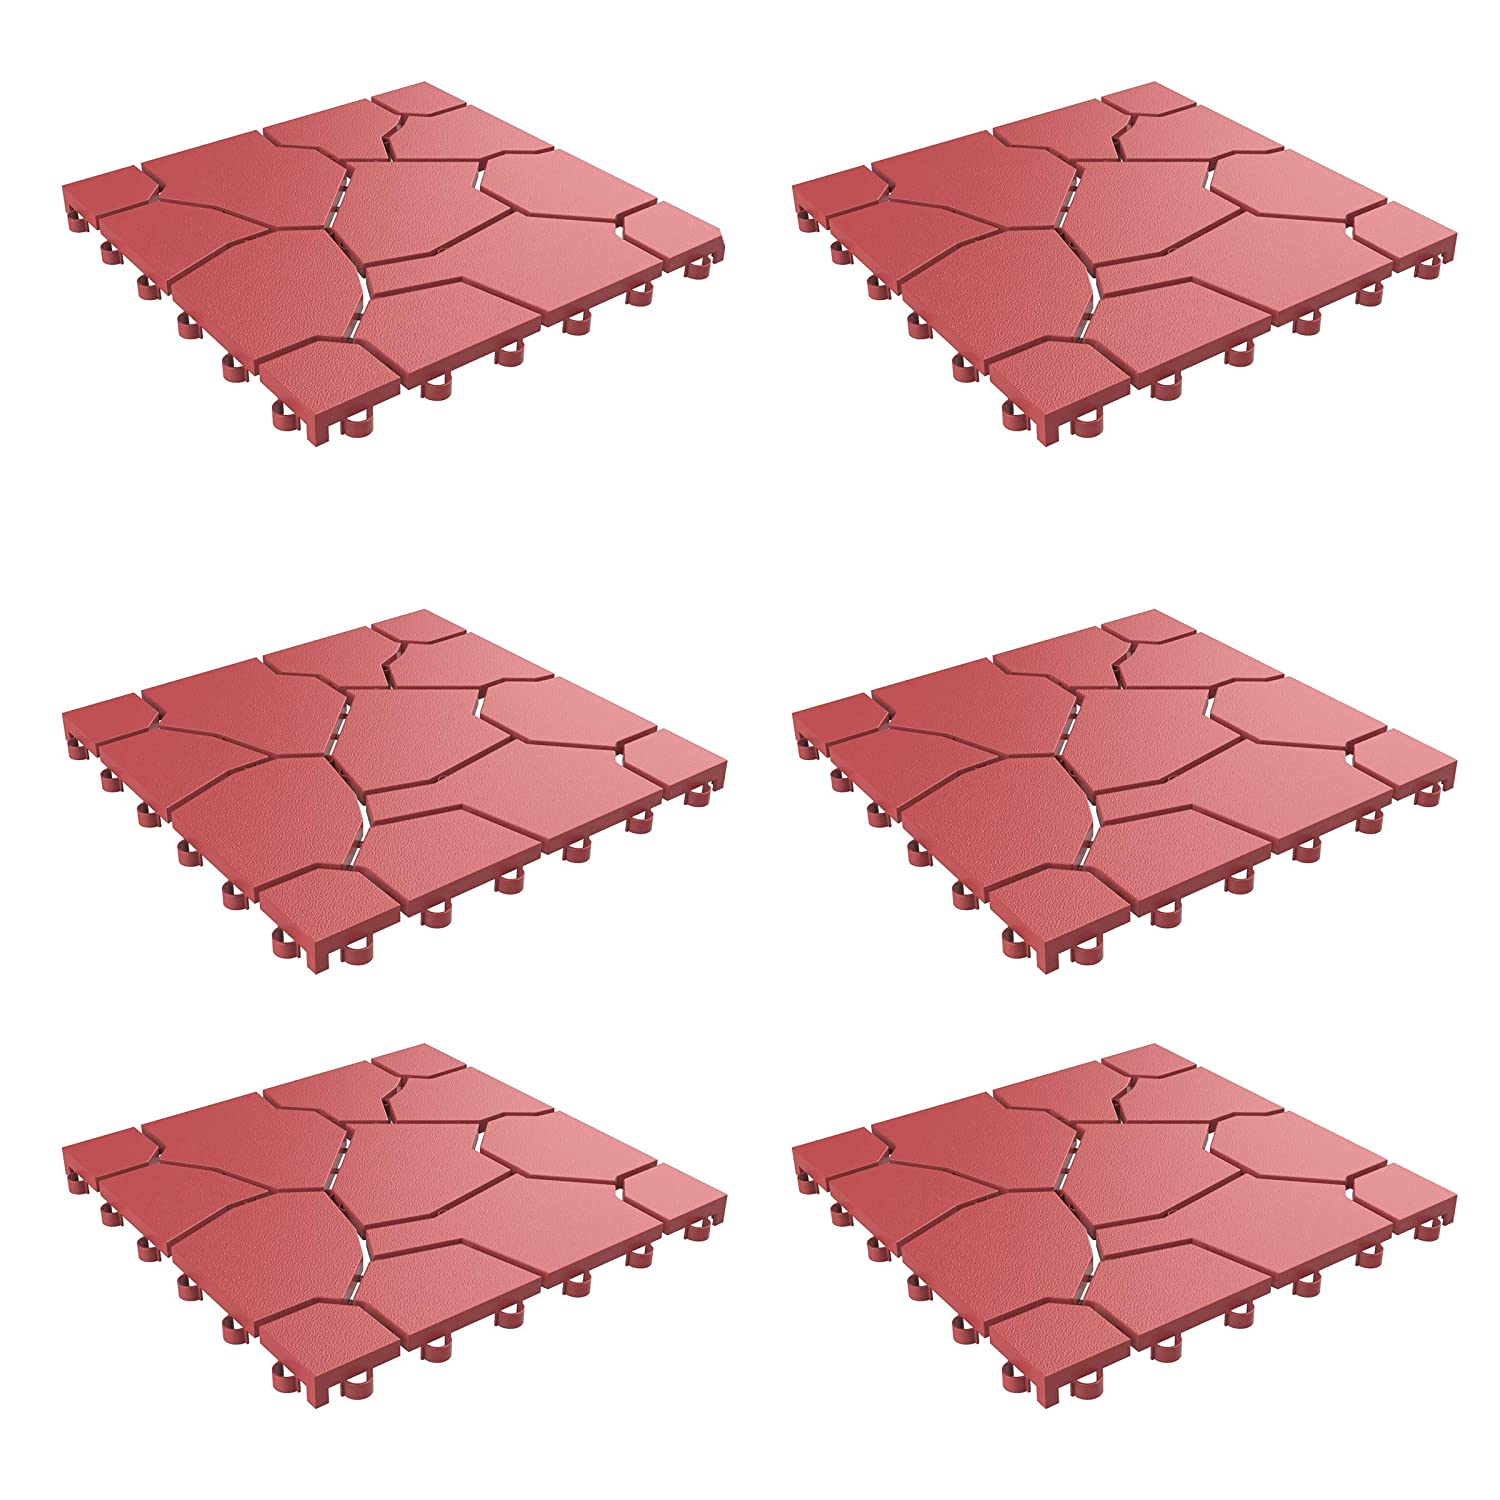 Pure Garden 50-LG1172 Patio and Deck Tiles – Interlocking Look Outdoor Flooring Pavers Weather Resistant and Antislip Square DIY Mat (Brick Red 6 Pack)